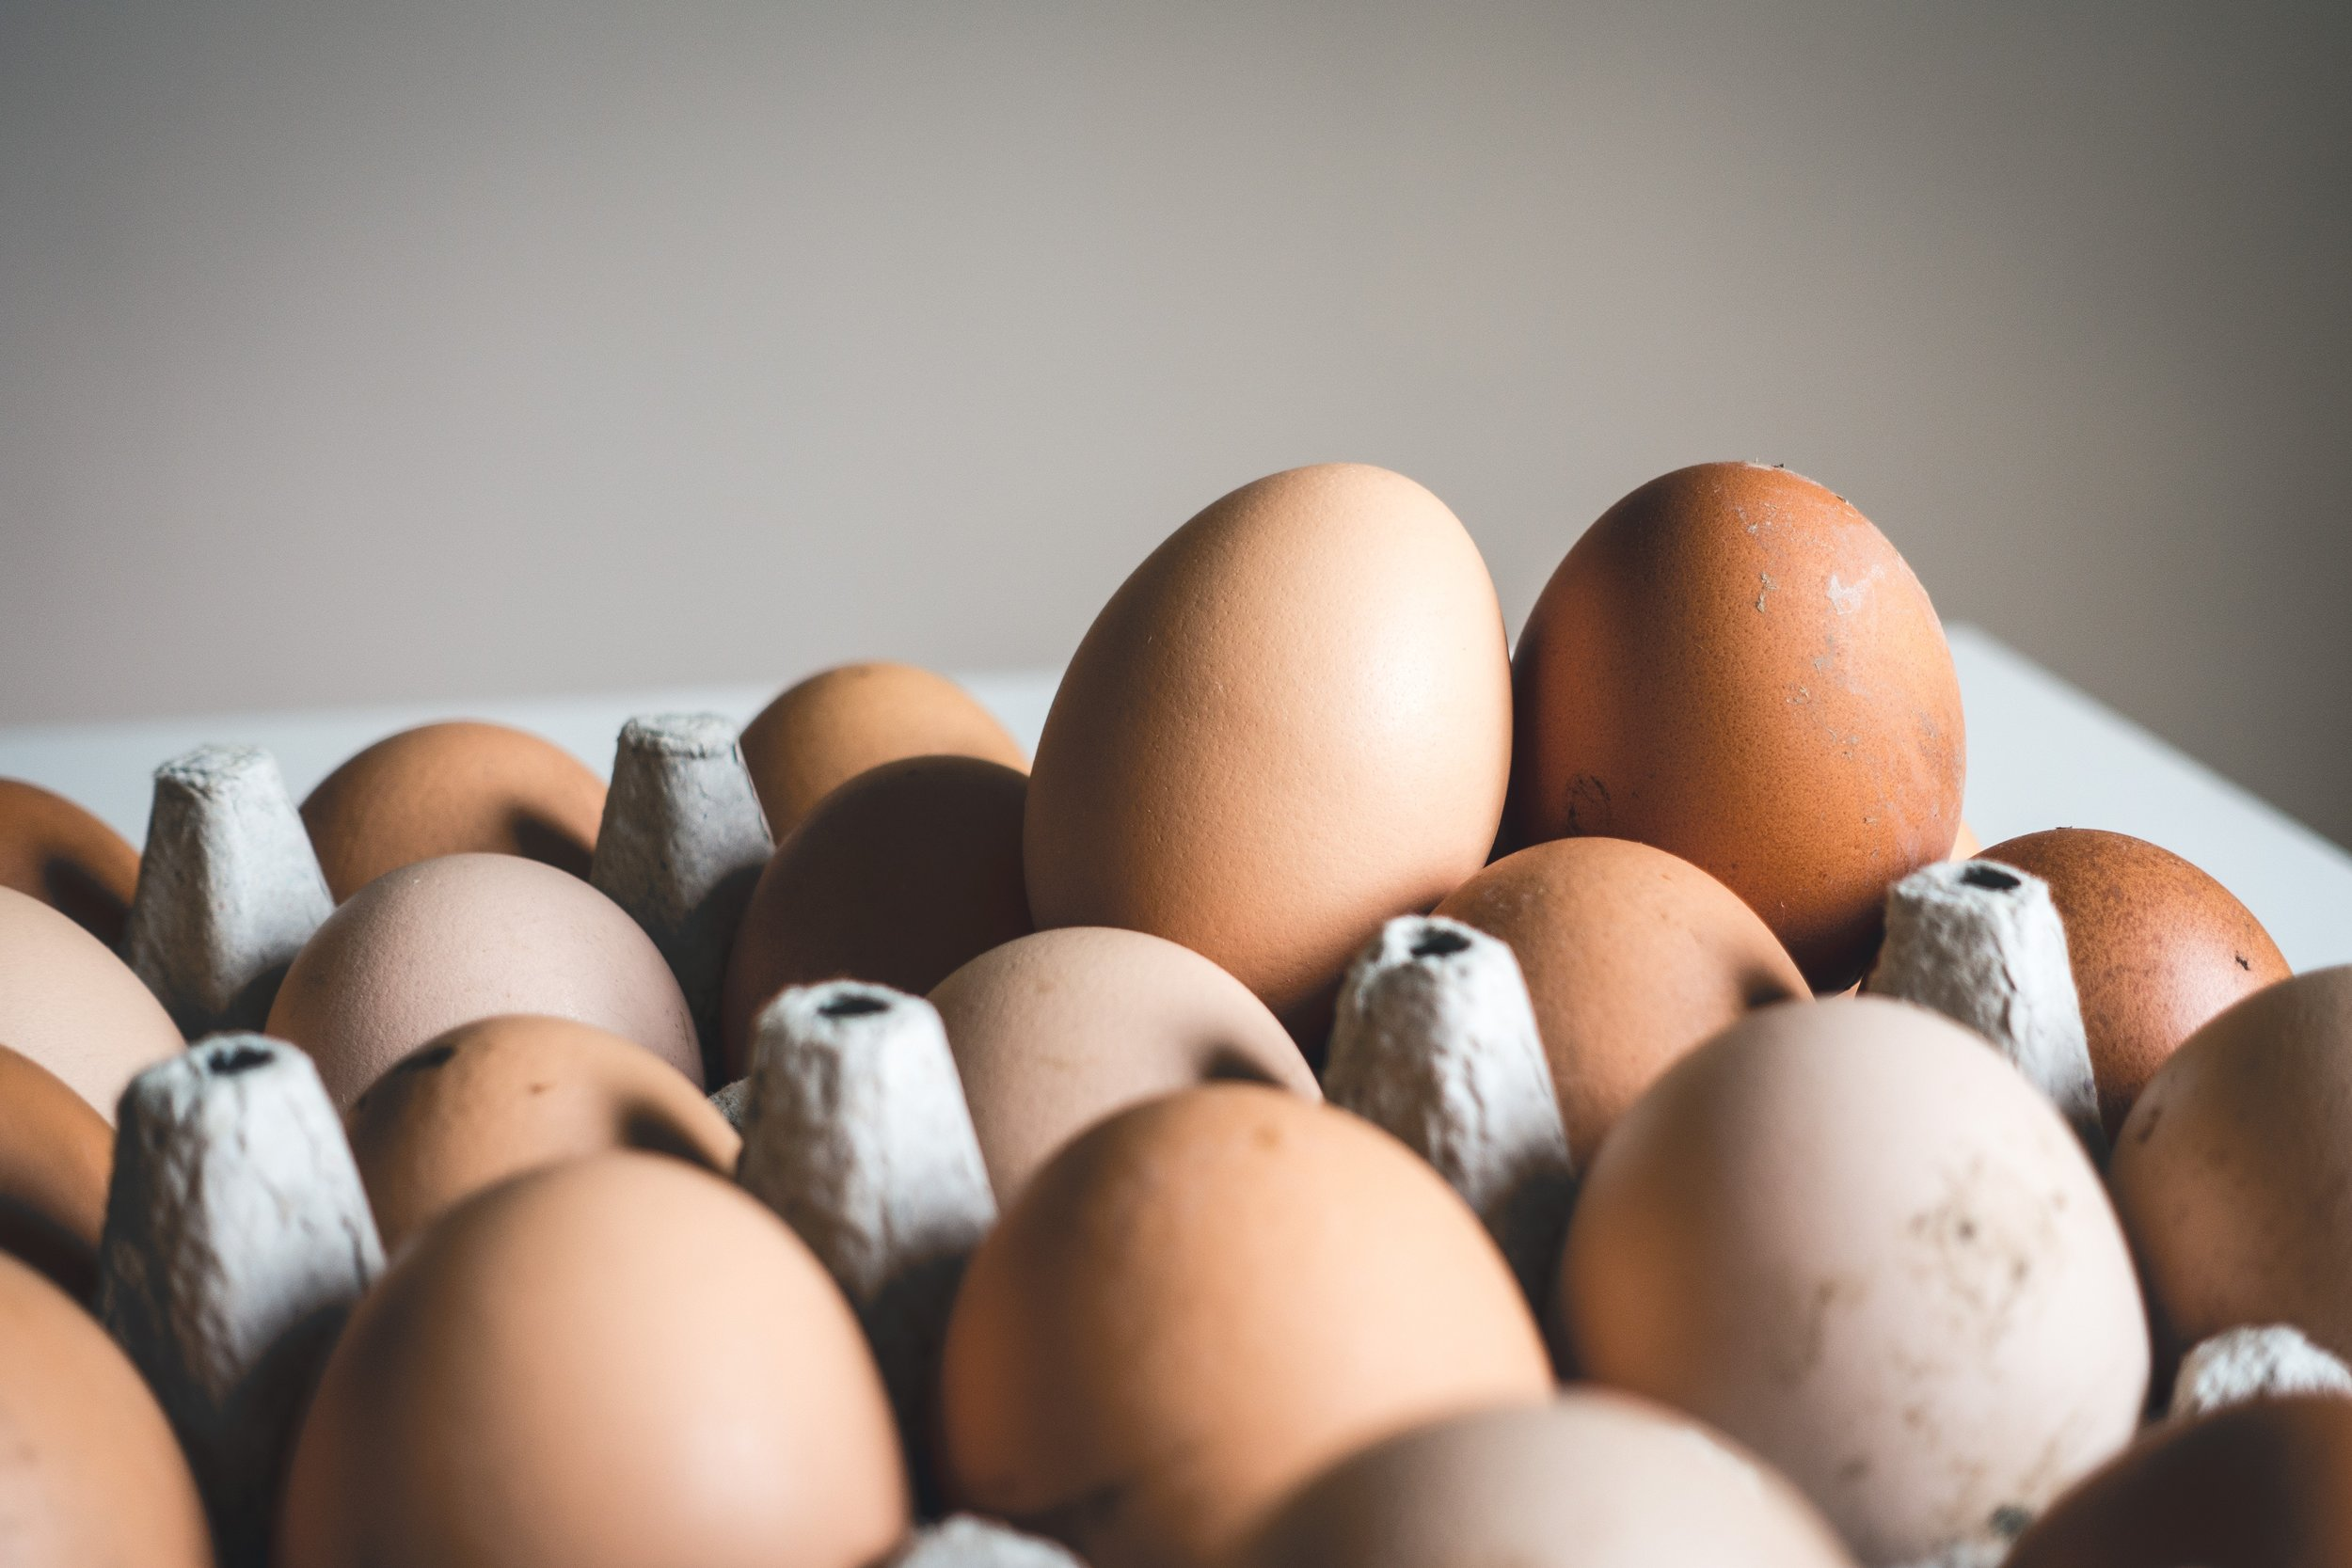 Eggs: I have three every day.